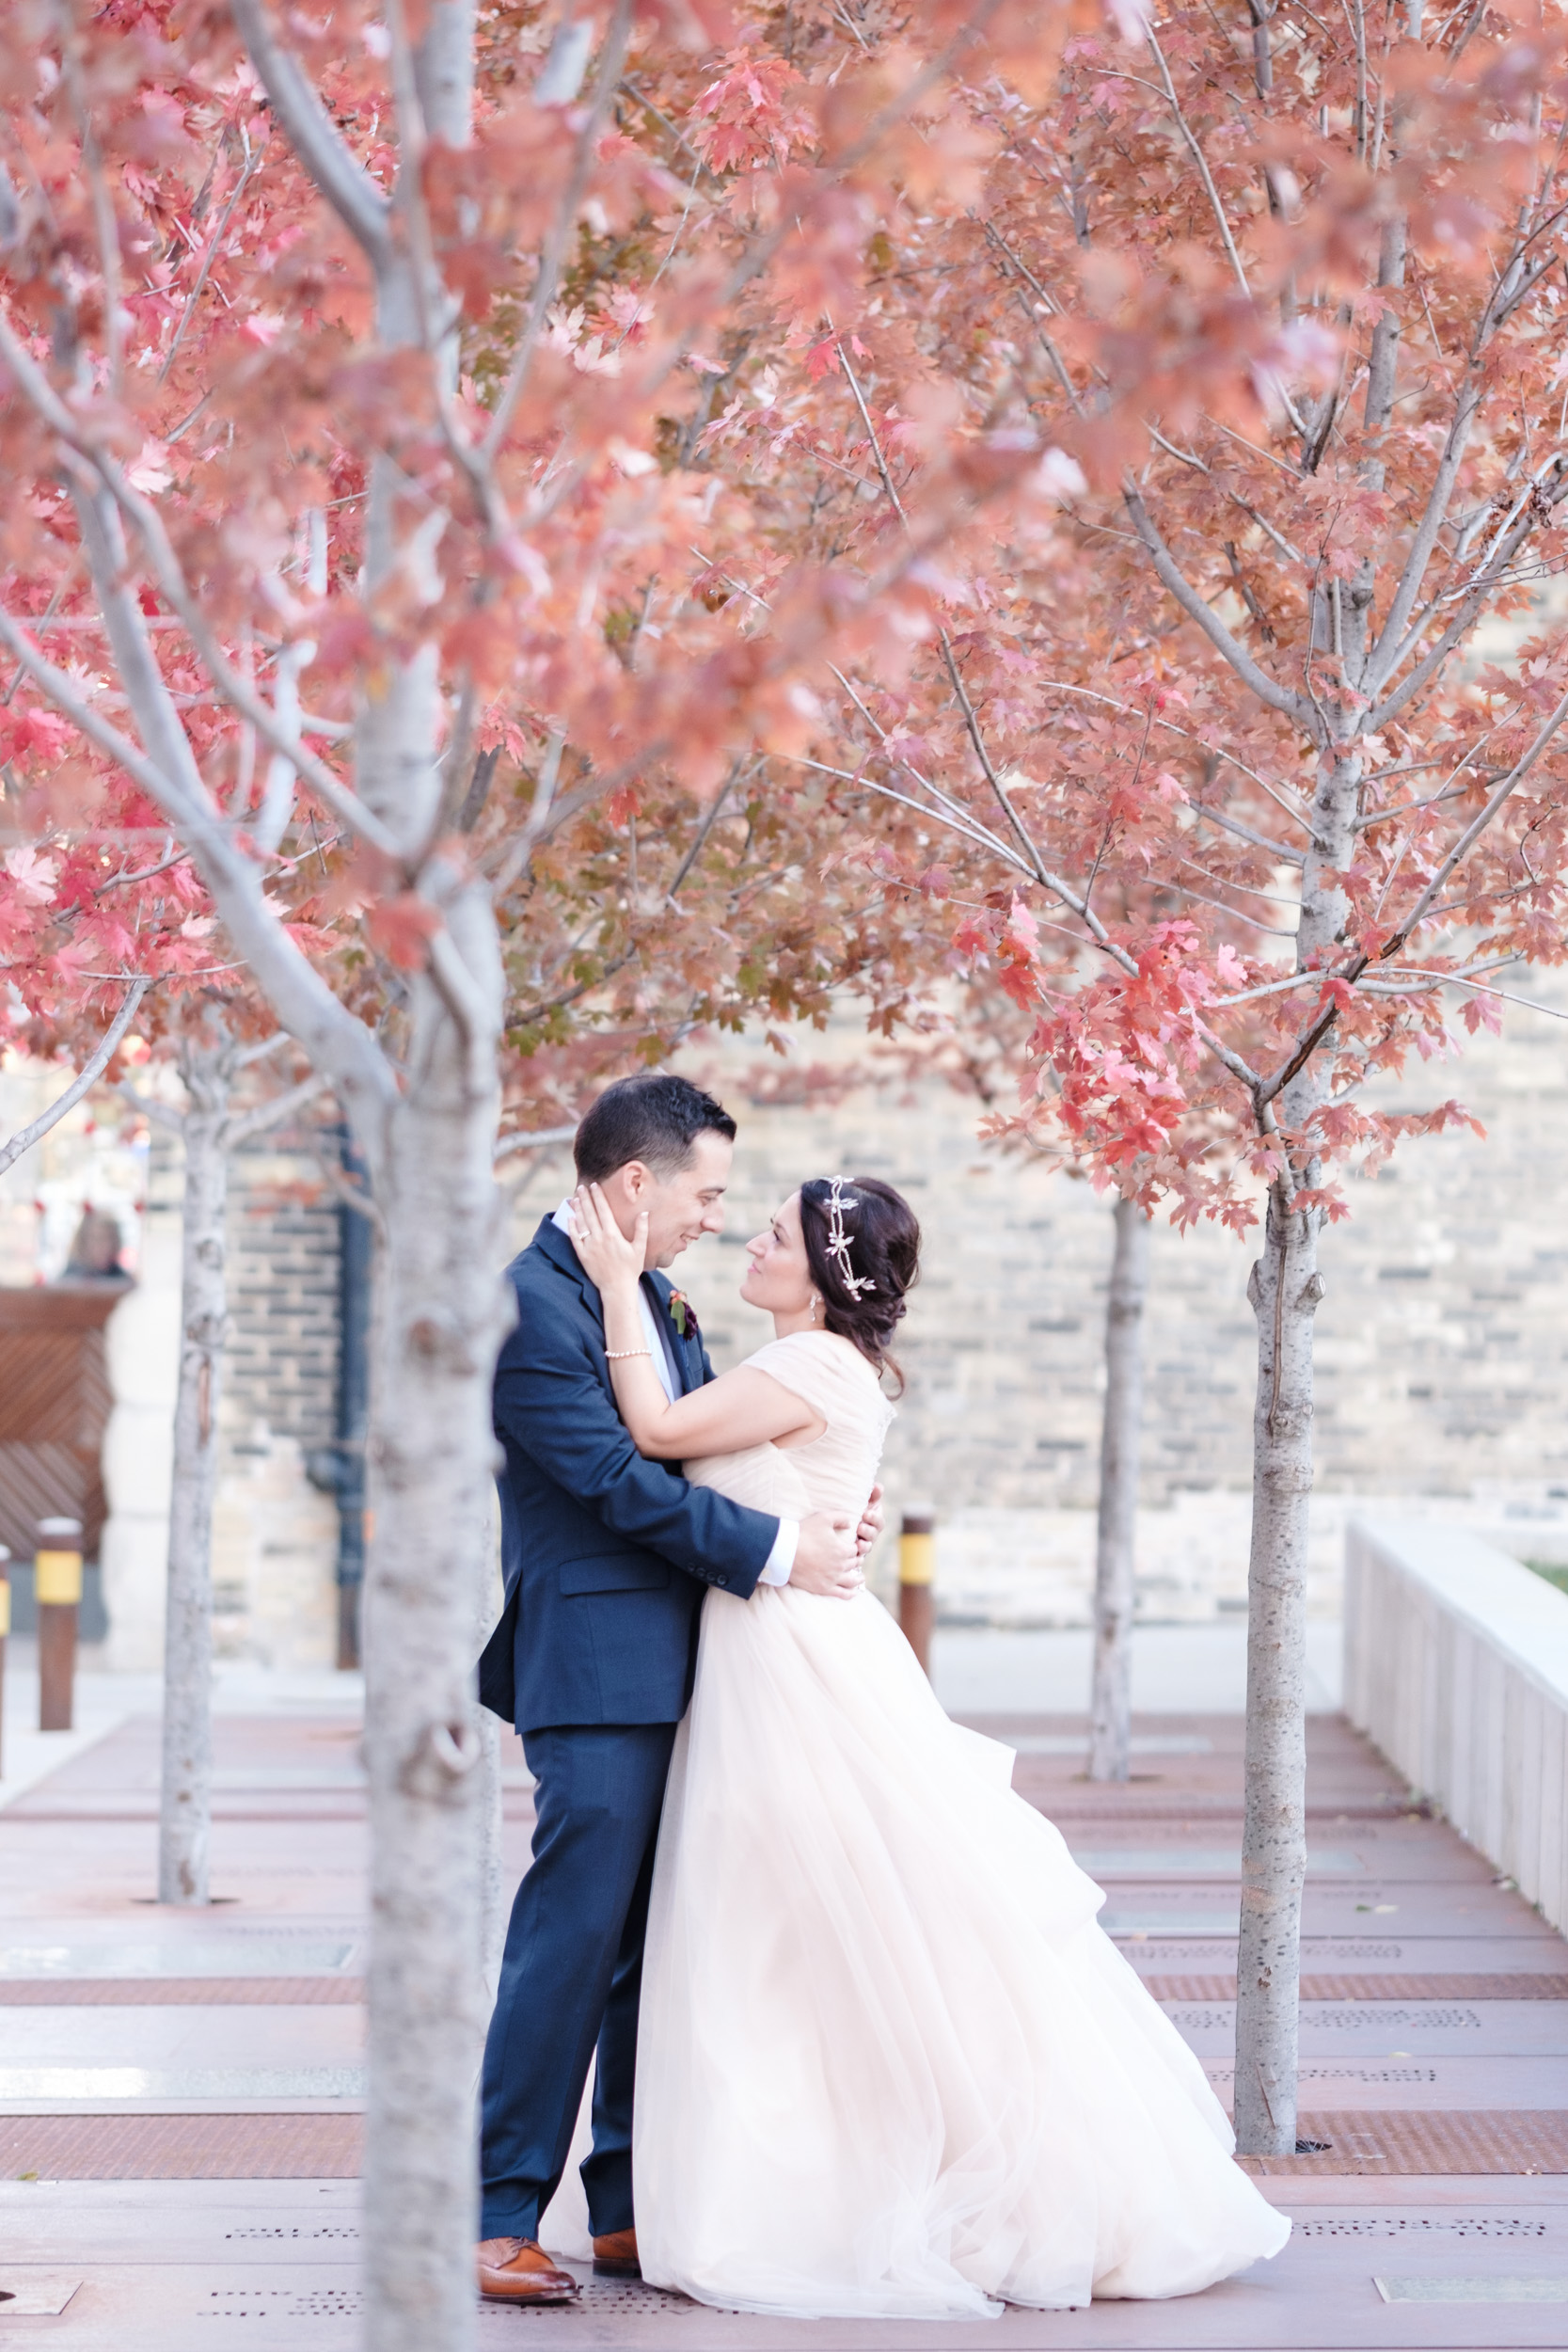 Artistic wedding portrait of bride and groom with red maple leaves behind in fall wedding.  Best Rockford wedding photographer.